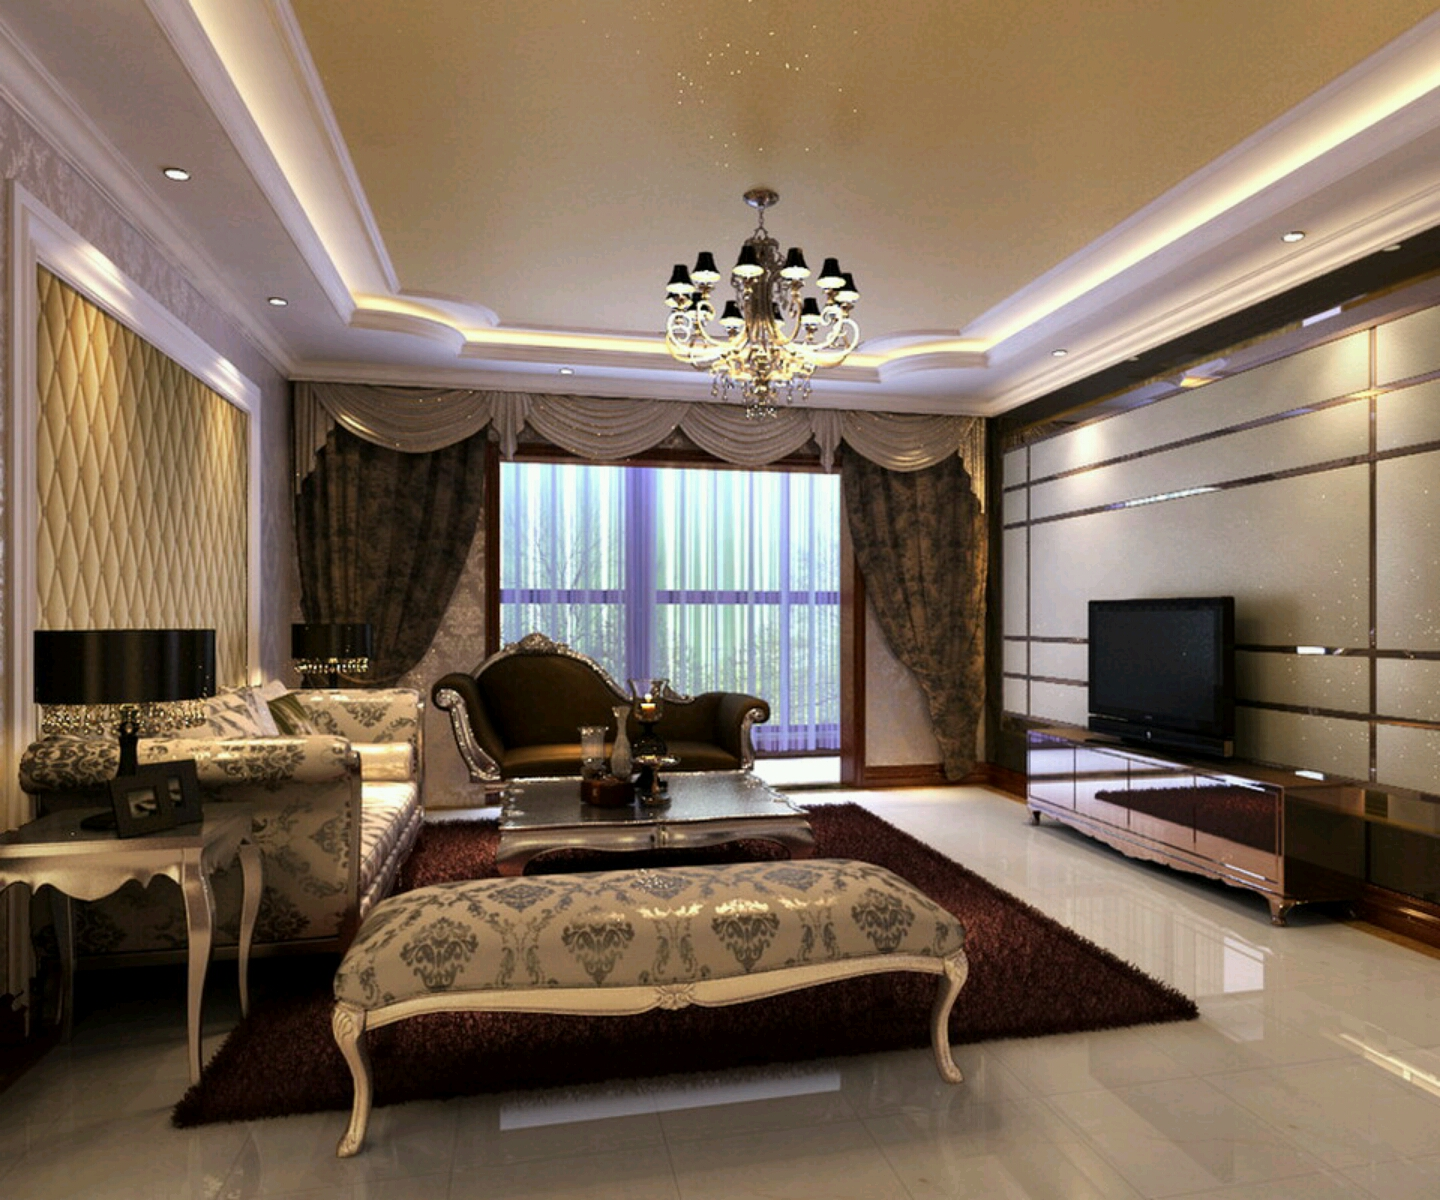 new home designs latest luxury homes interior decoration living room designs ideas. Black Bedroom Furniture Sets. Home Design Ideas